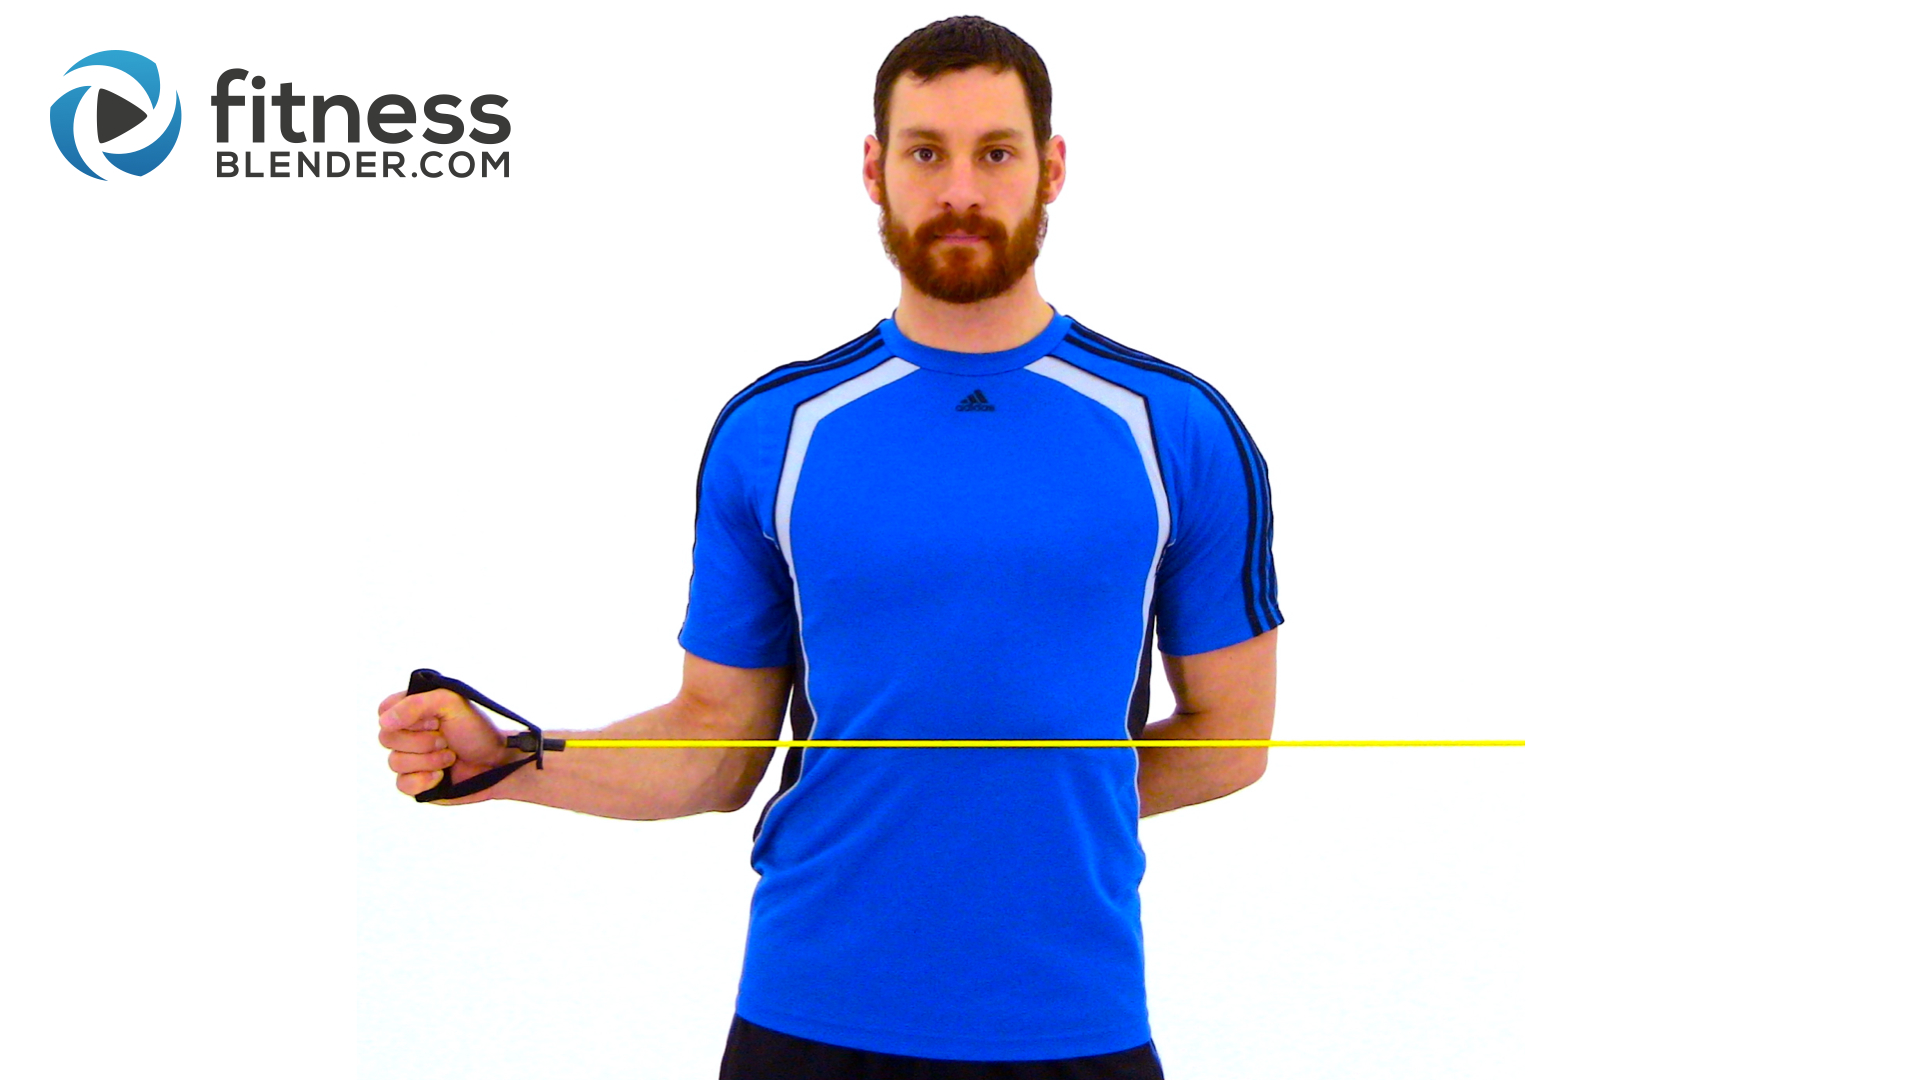 Rotator Cuff Workout Exercises For Injury Prevention Fitness Blender